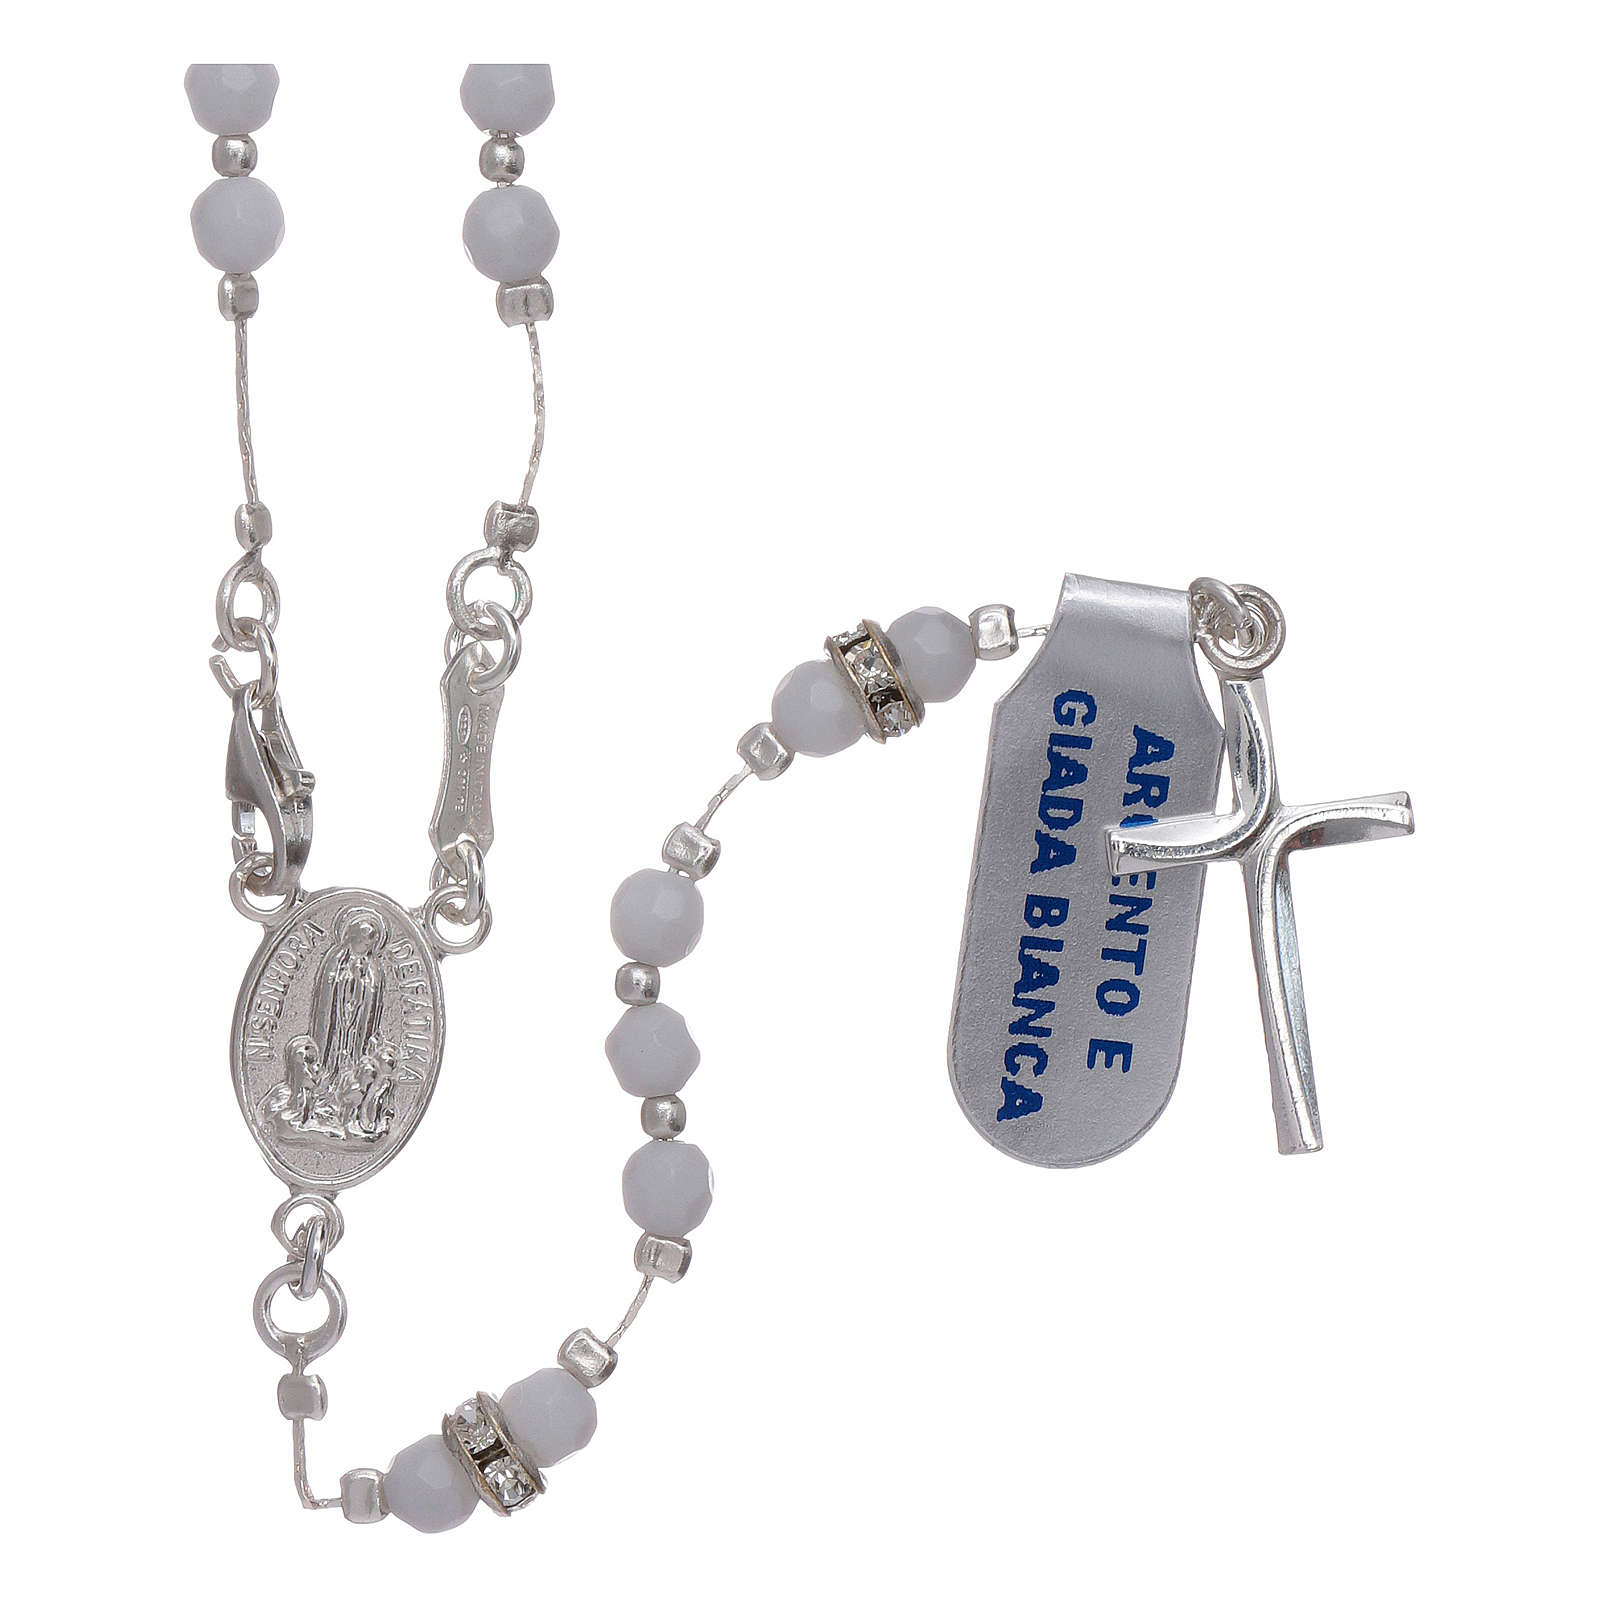 Rosary Our Lady of Fatima's centenary in 925 sterling silver and white jade 4